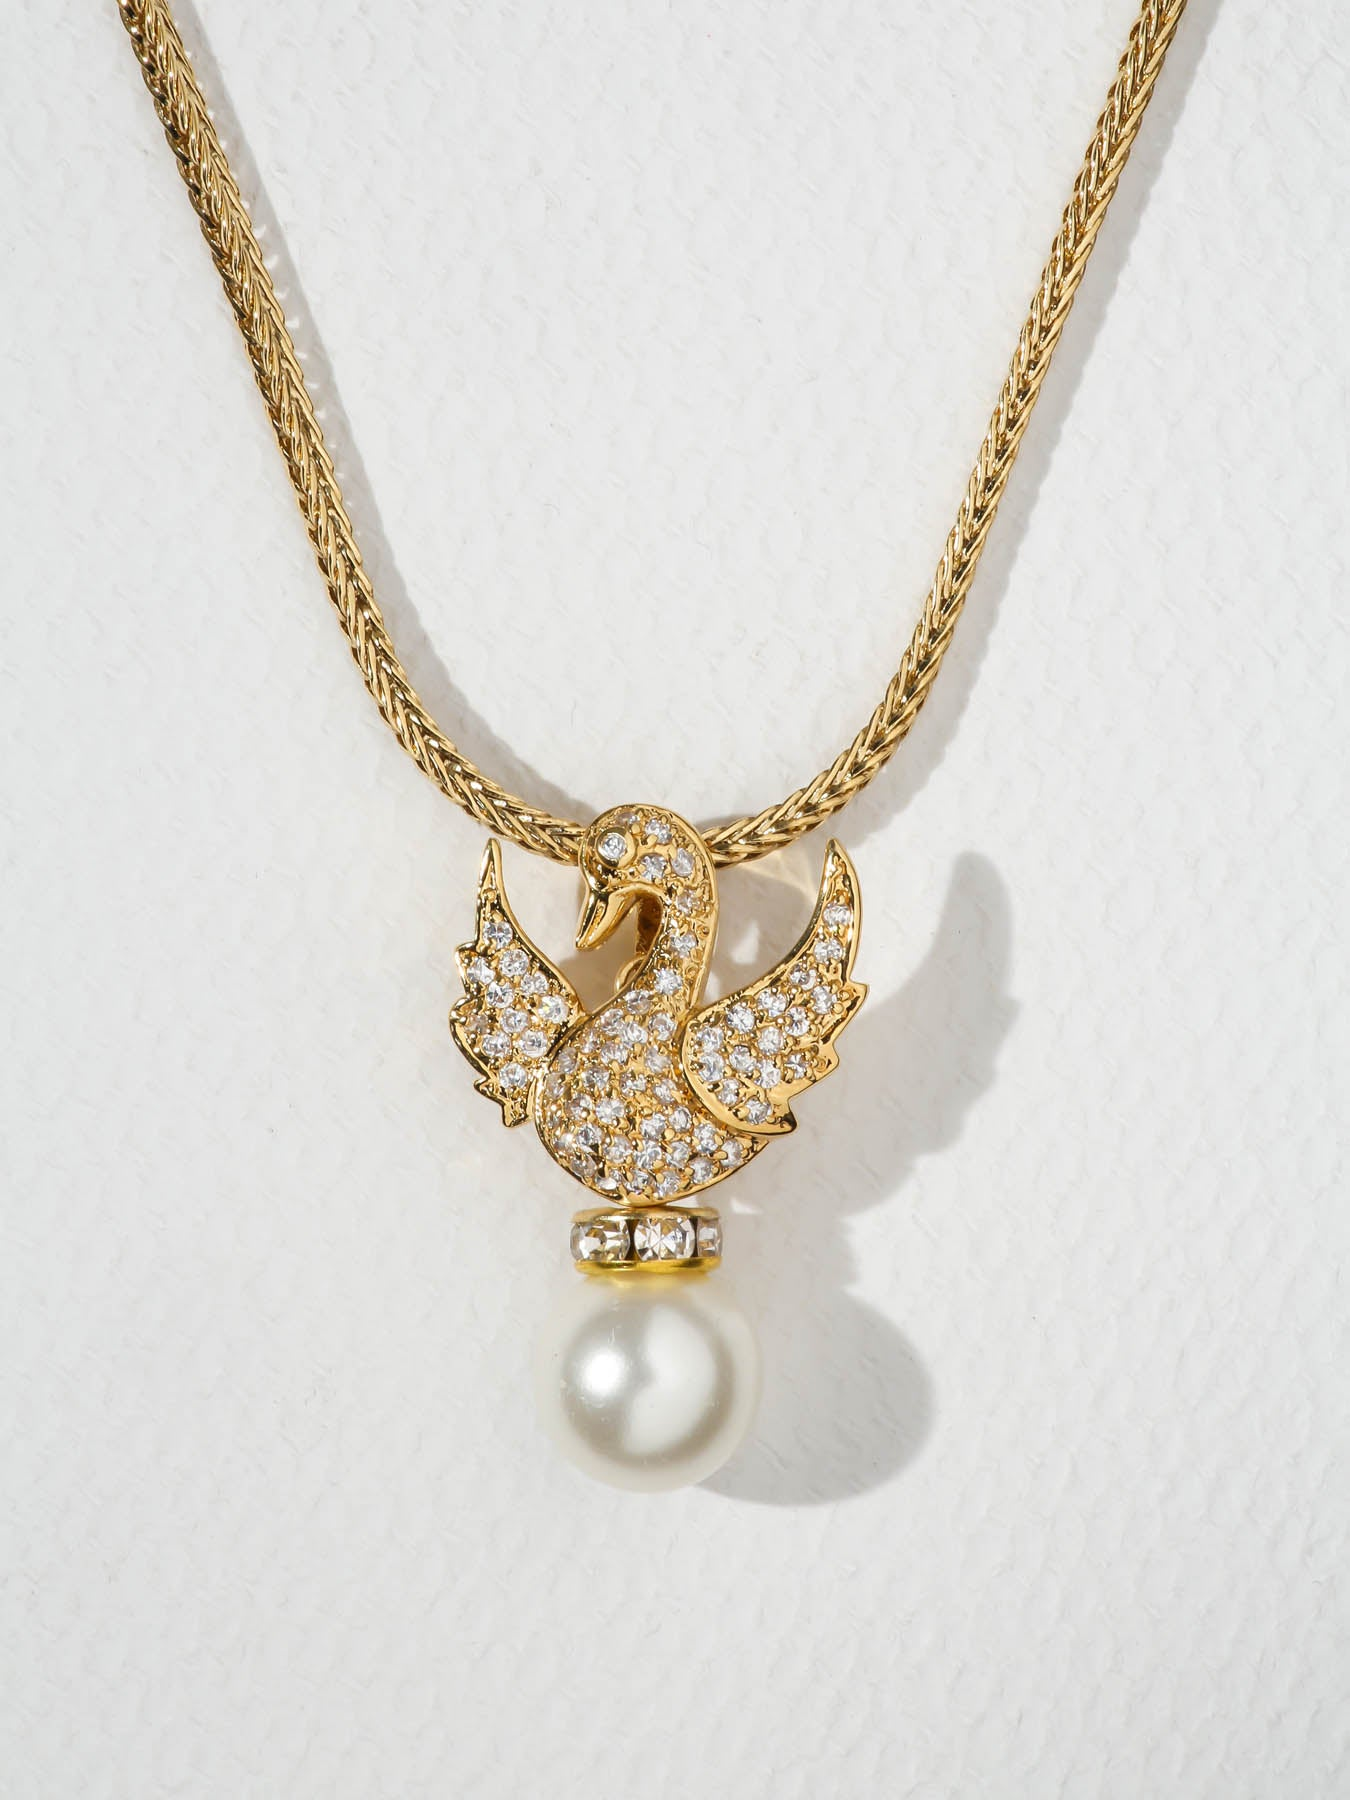 The Sweet Swan Necklace